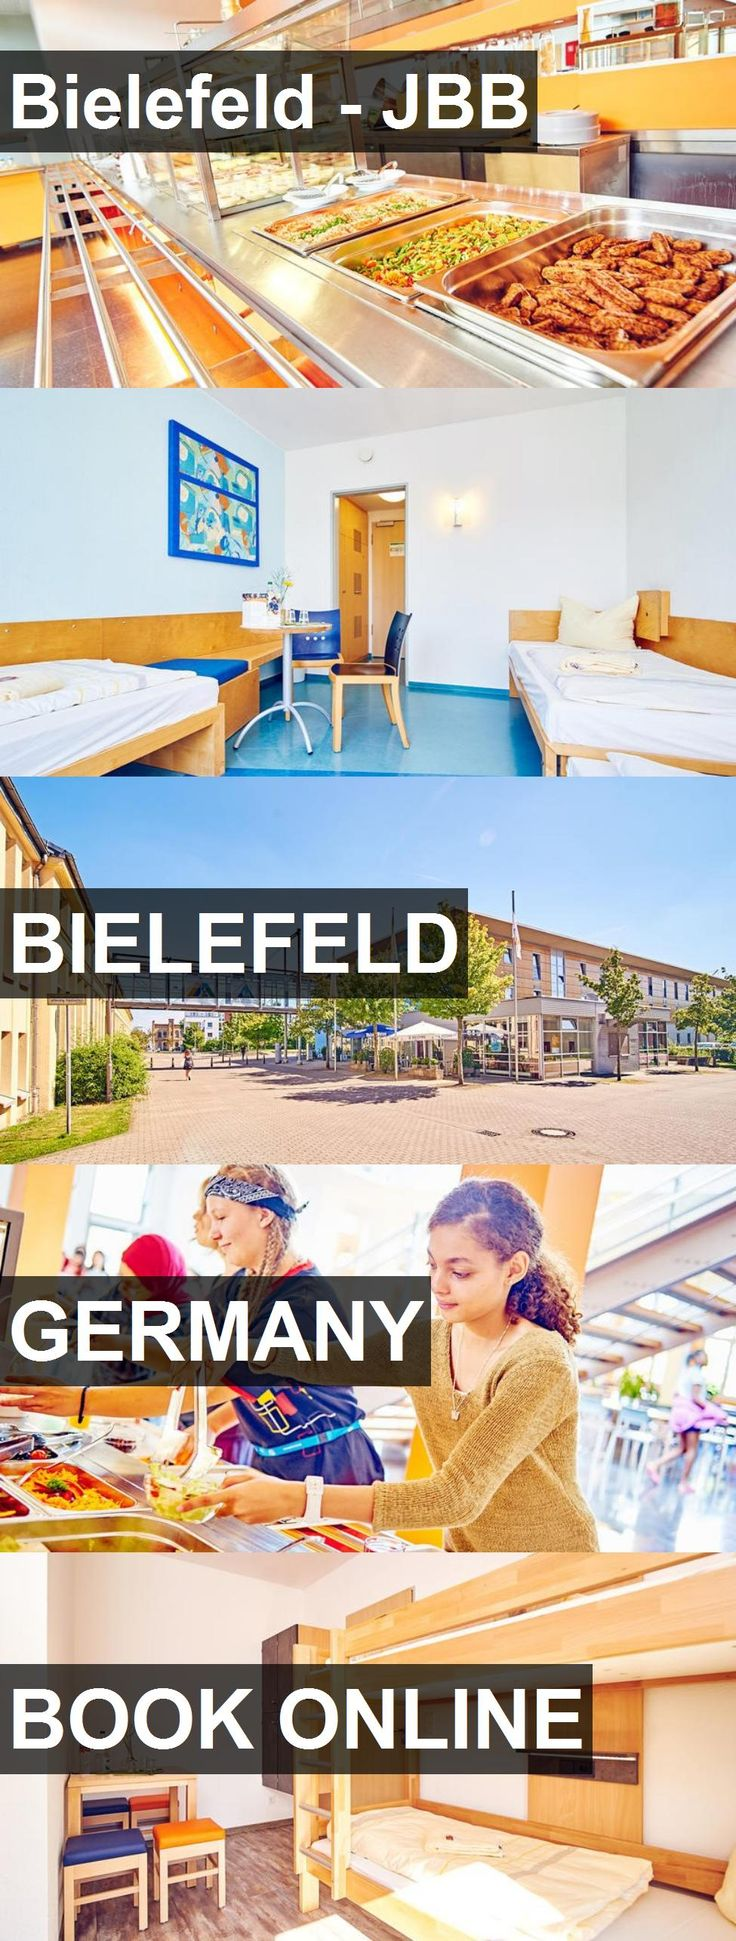 Hotel Bielefeld - JBB in Bielefeld, Germany. For more information, photos, reviews and best prices please follow the link. #Germany #Bielefeld #travel #vacation #hotel